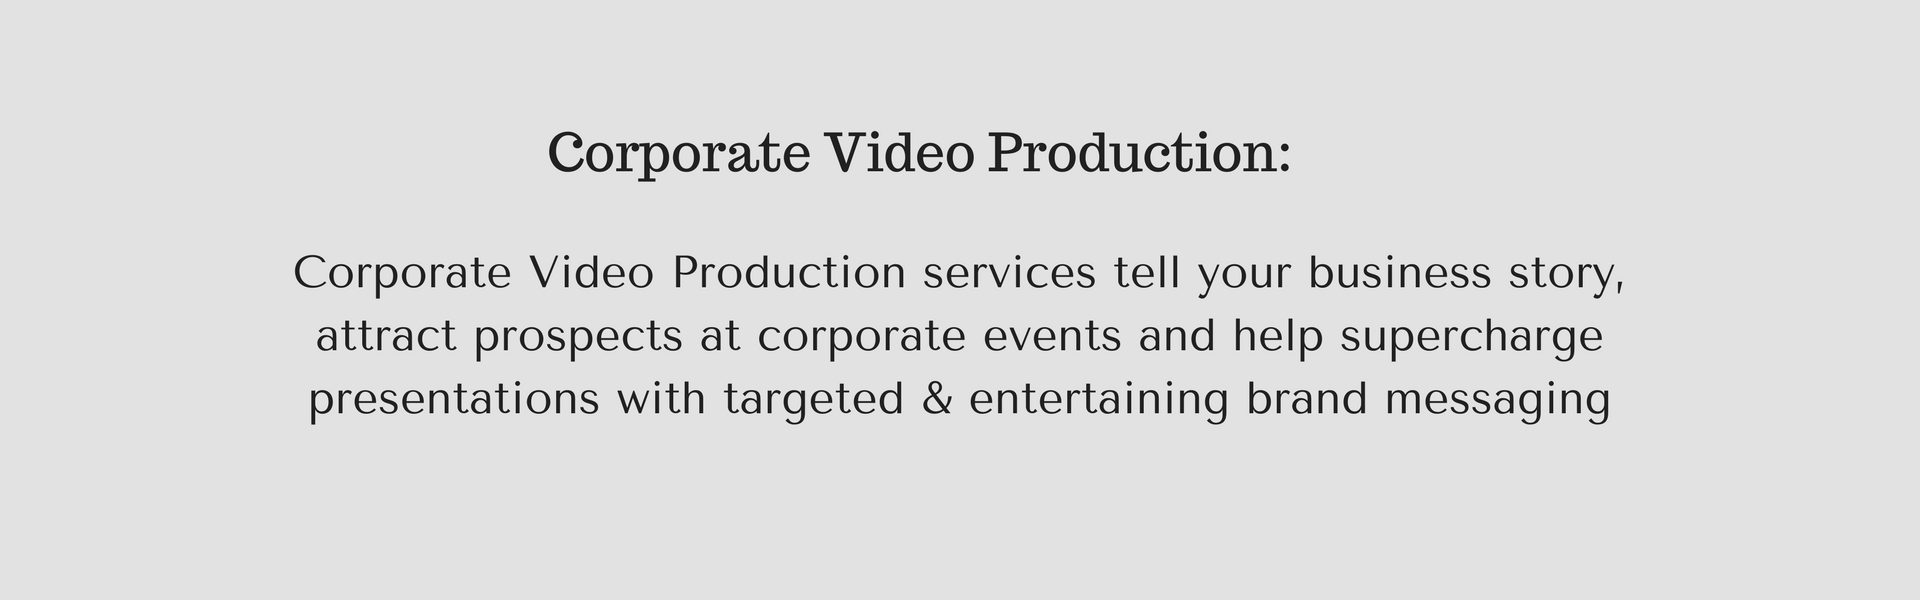 Corp video text